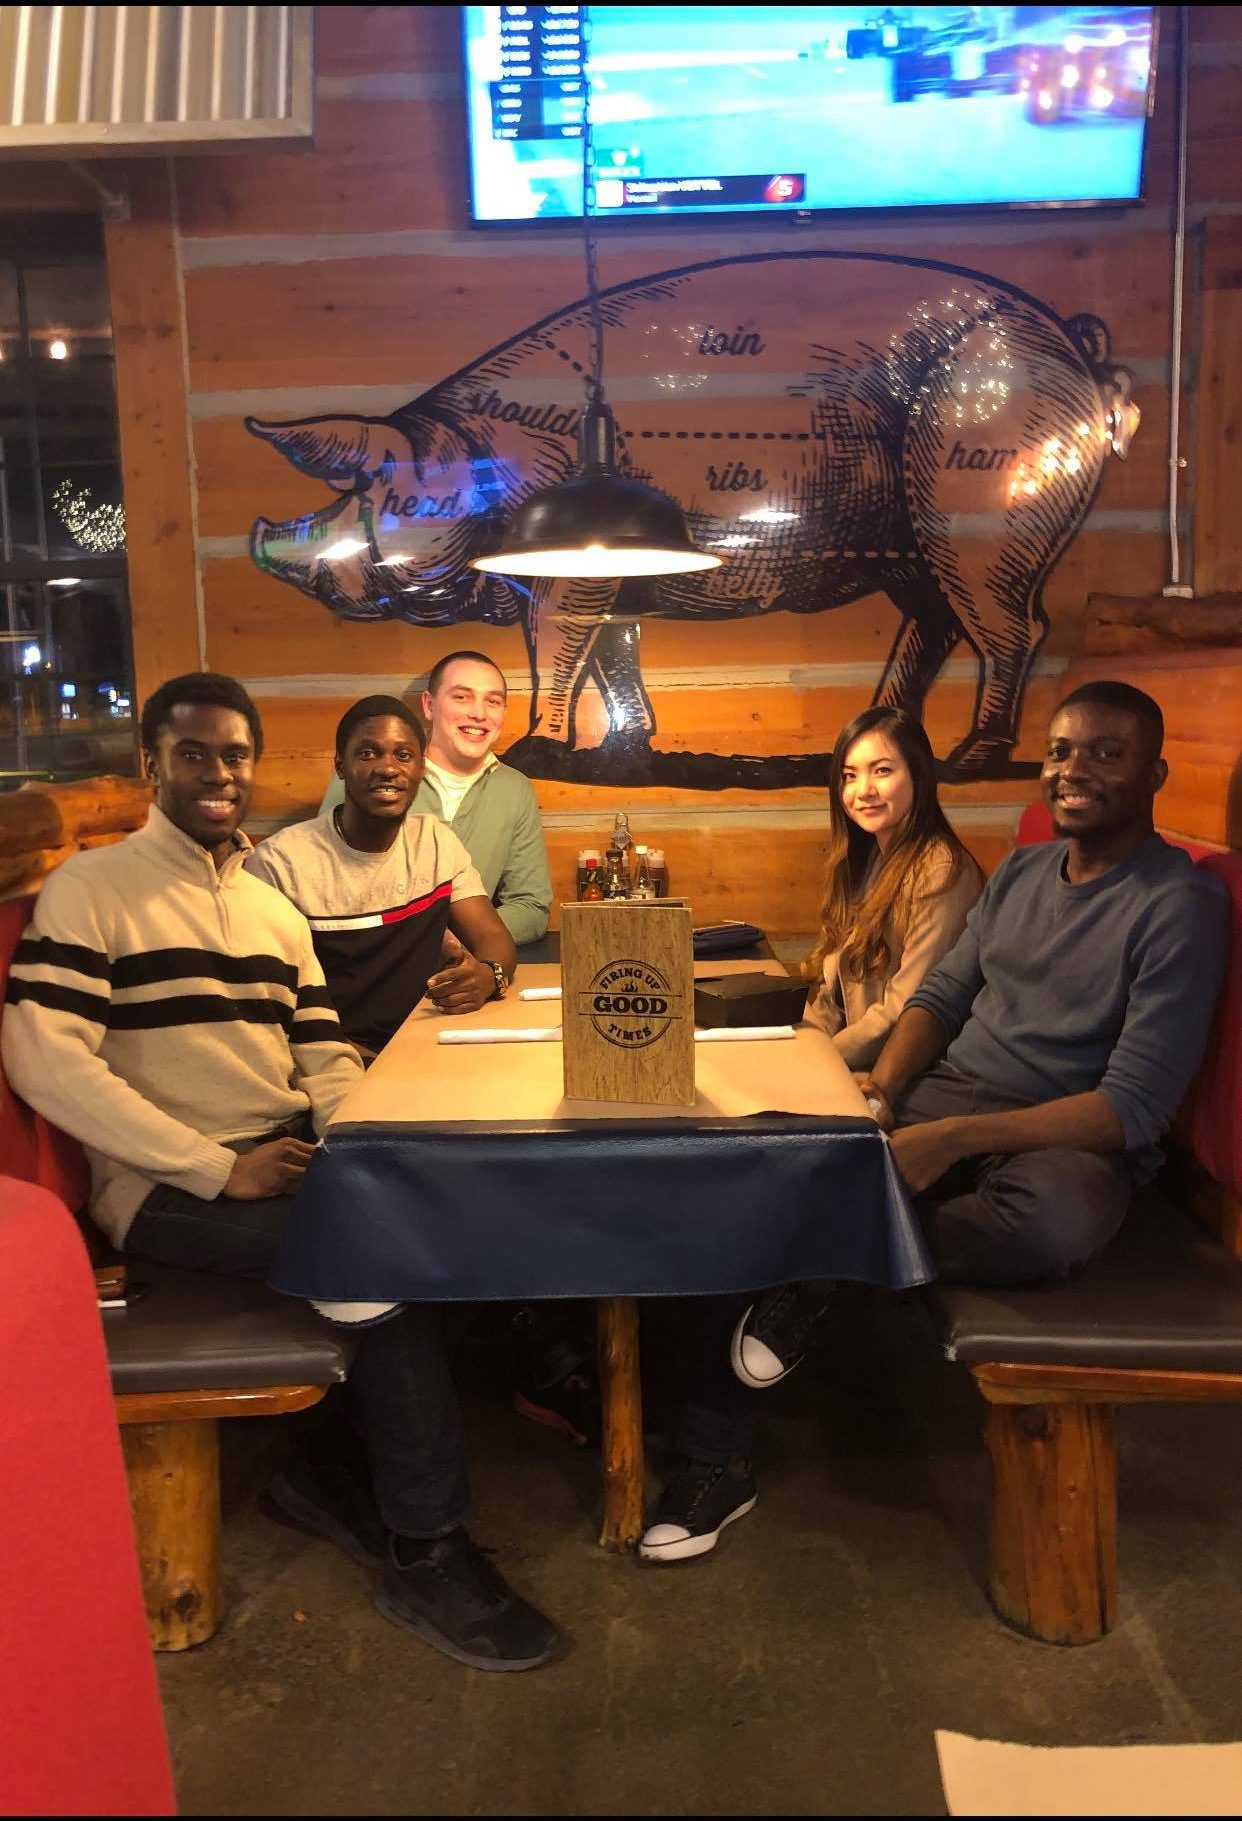 Chris and four friends at a table at Montana's restaurant